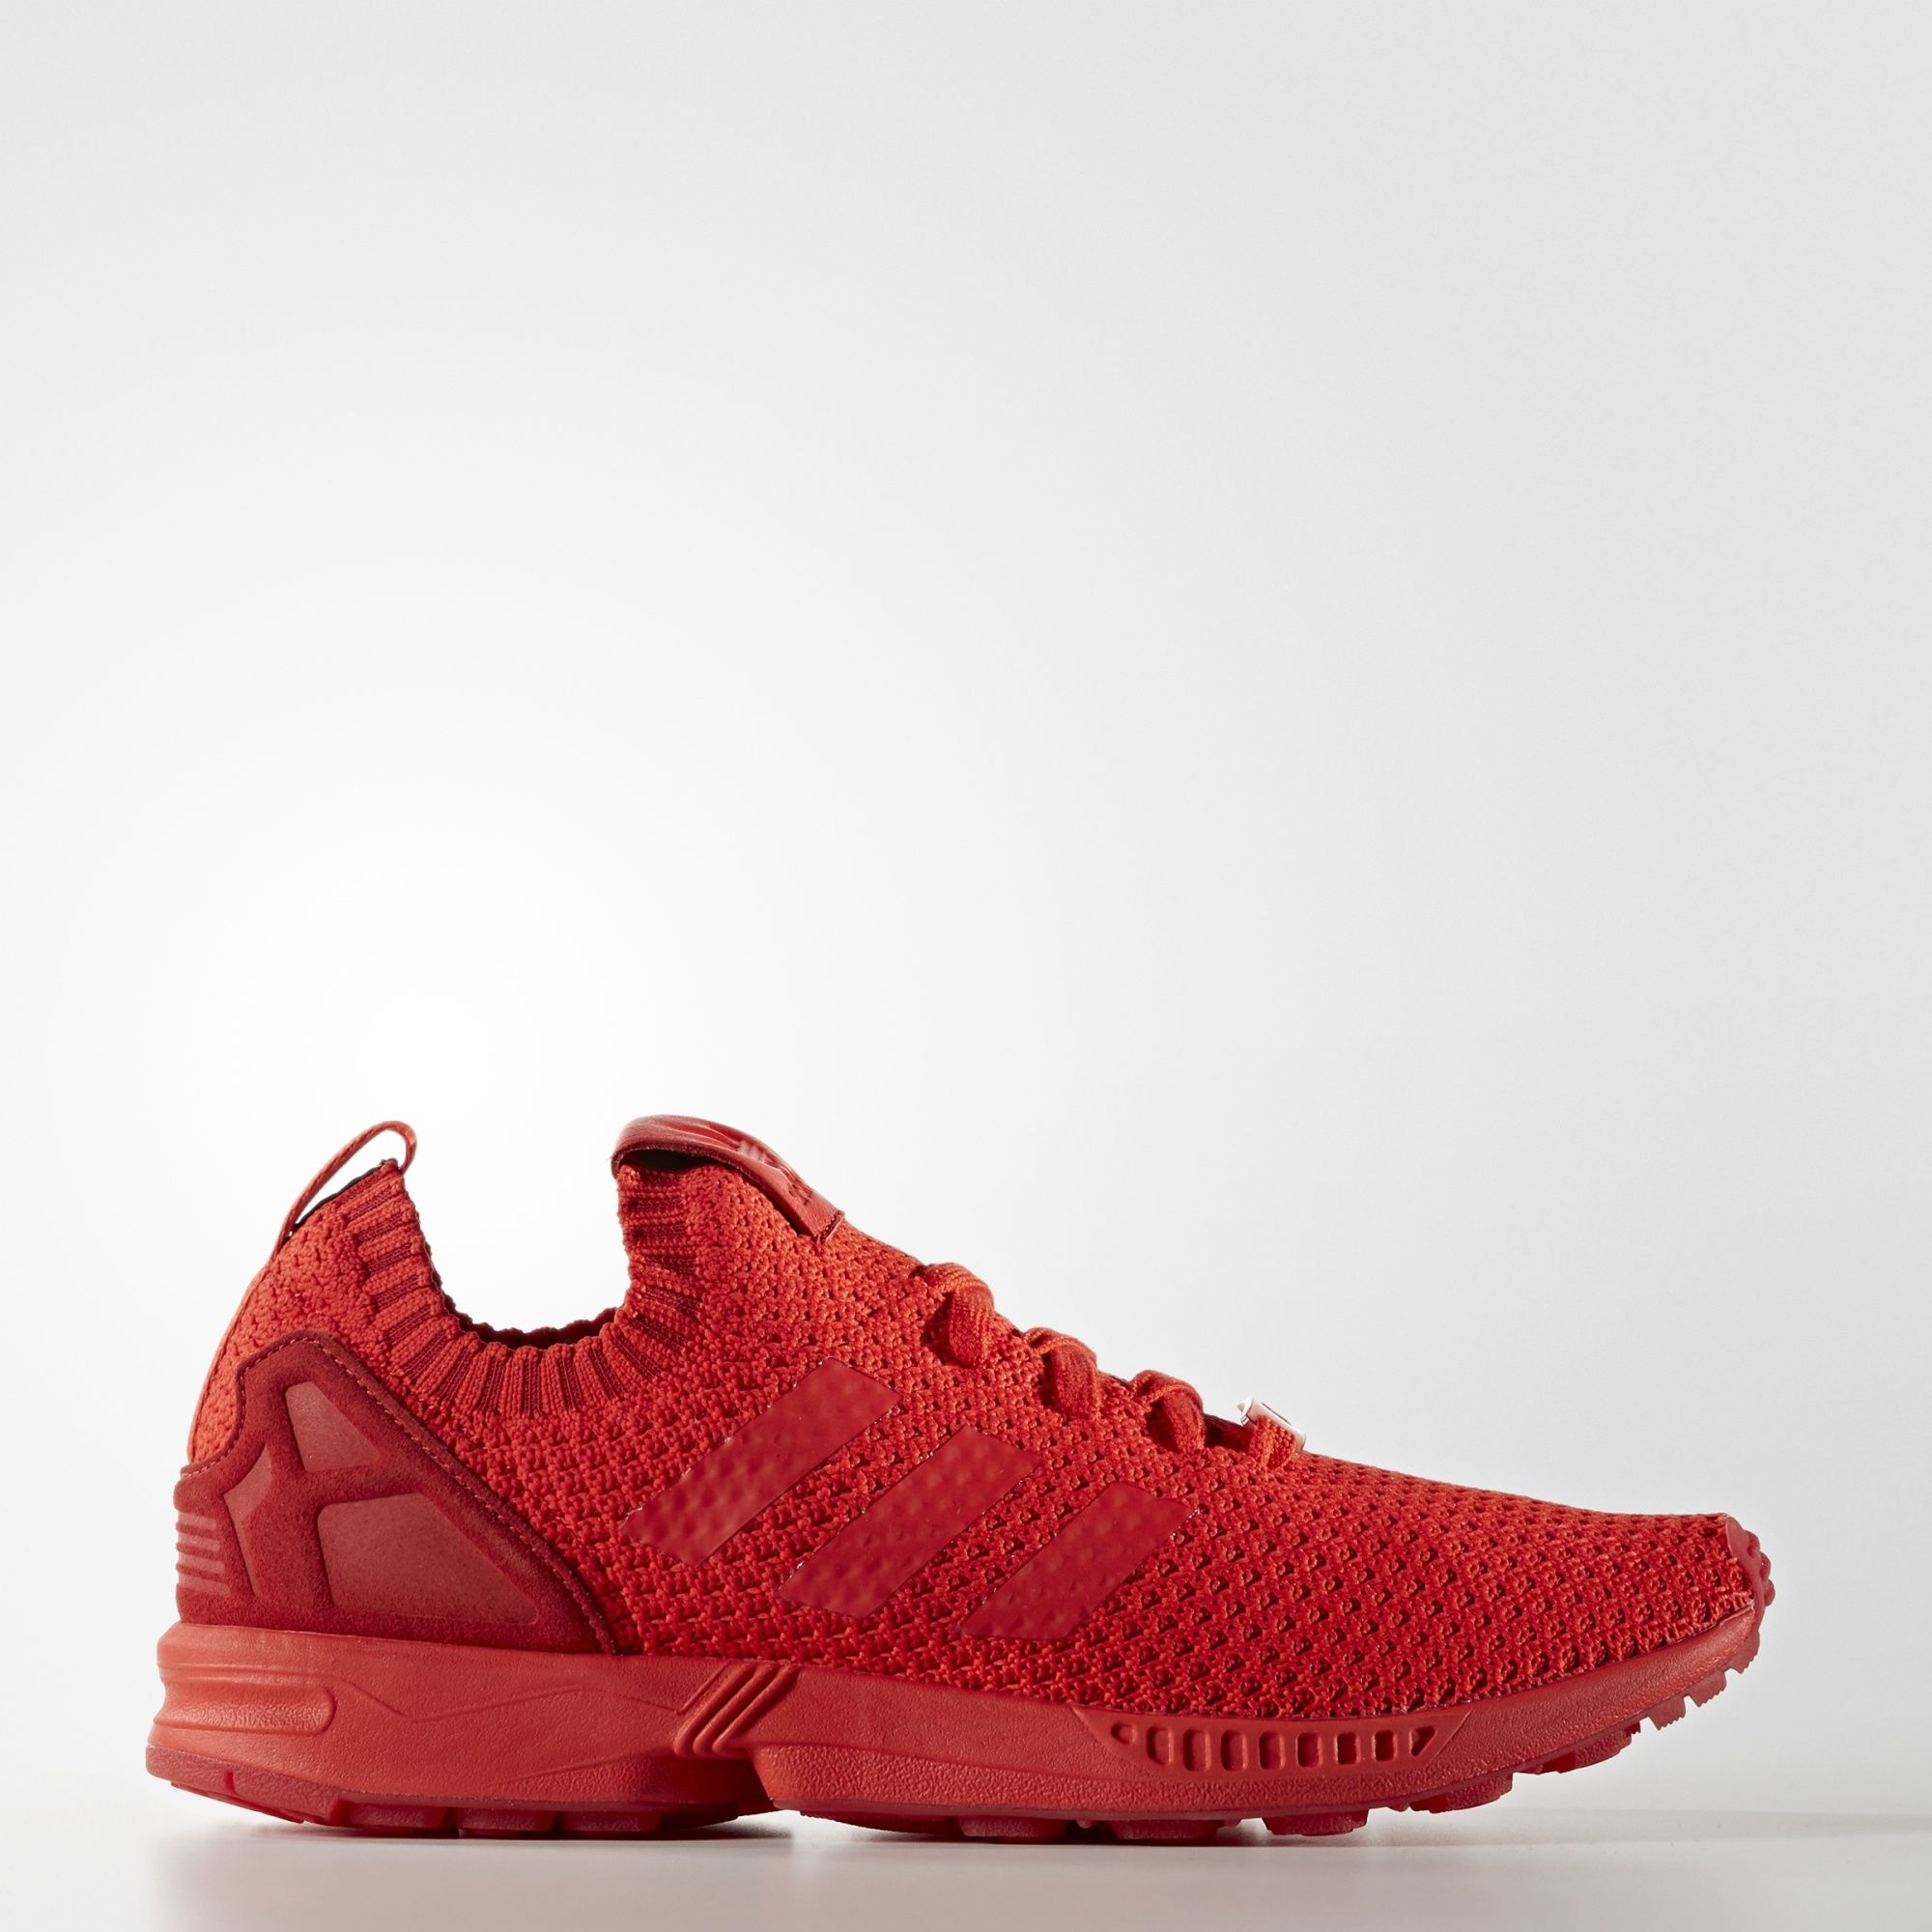 separation shoes 5f332 04f3f The adidas ZX Flux Gets a Primeknit Makeover - WearTesters